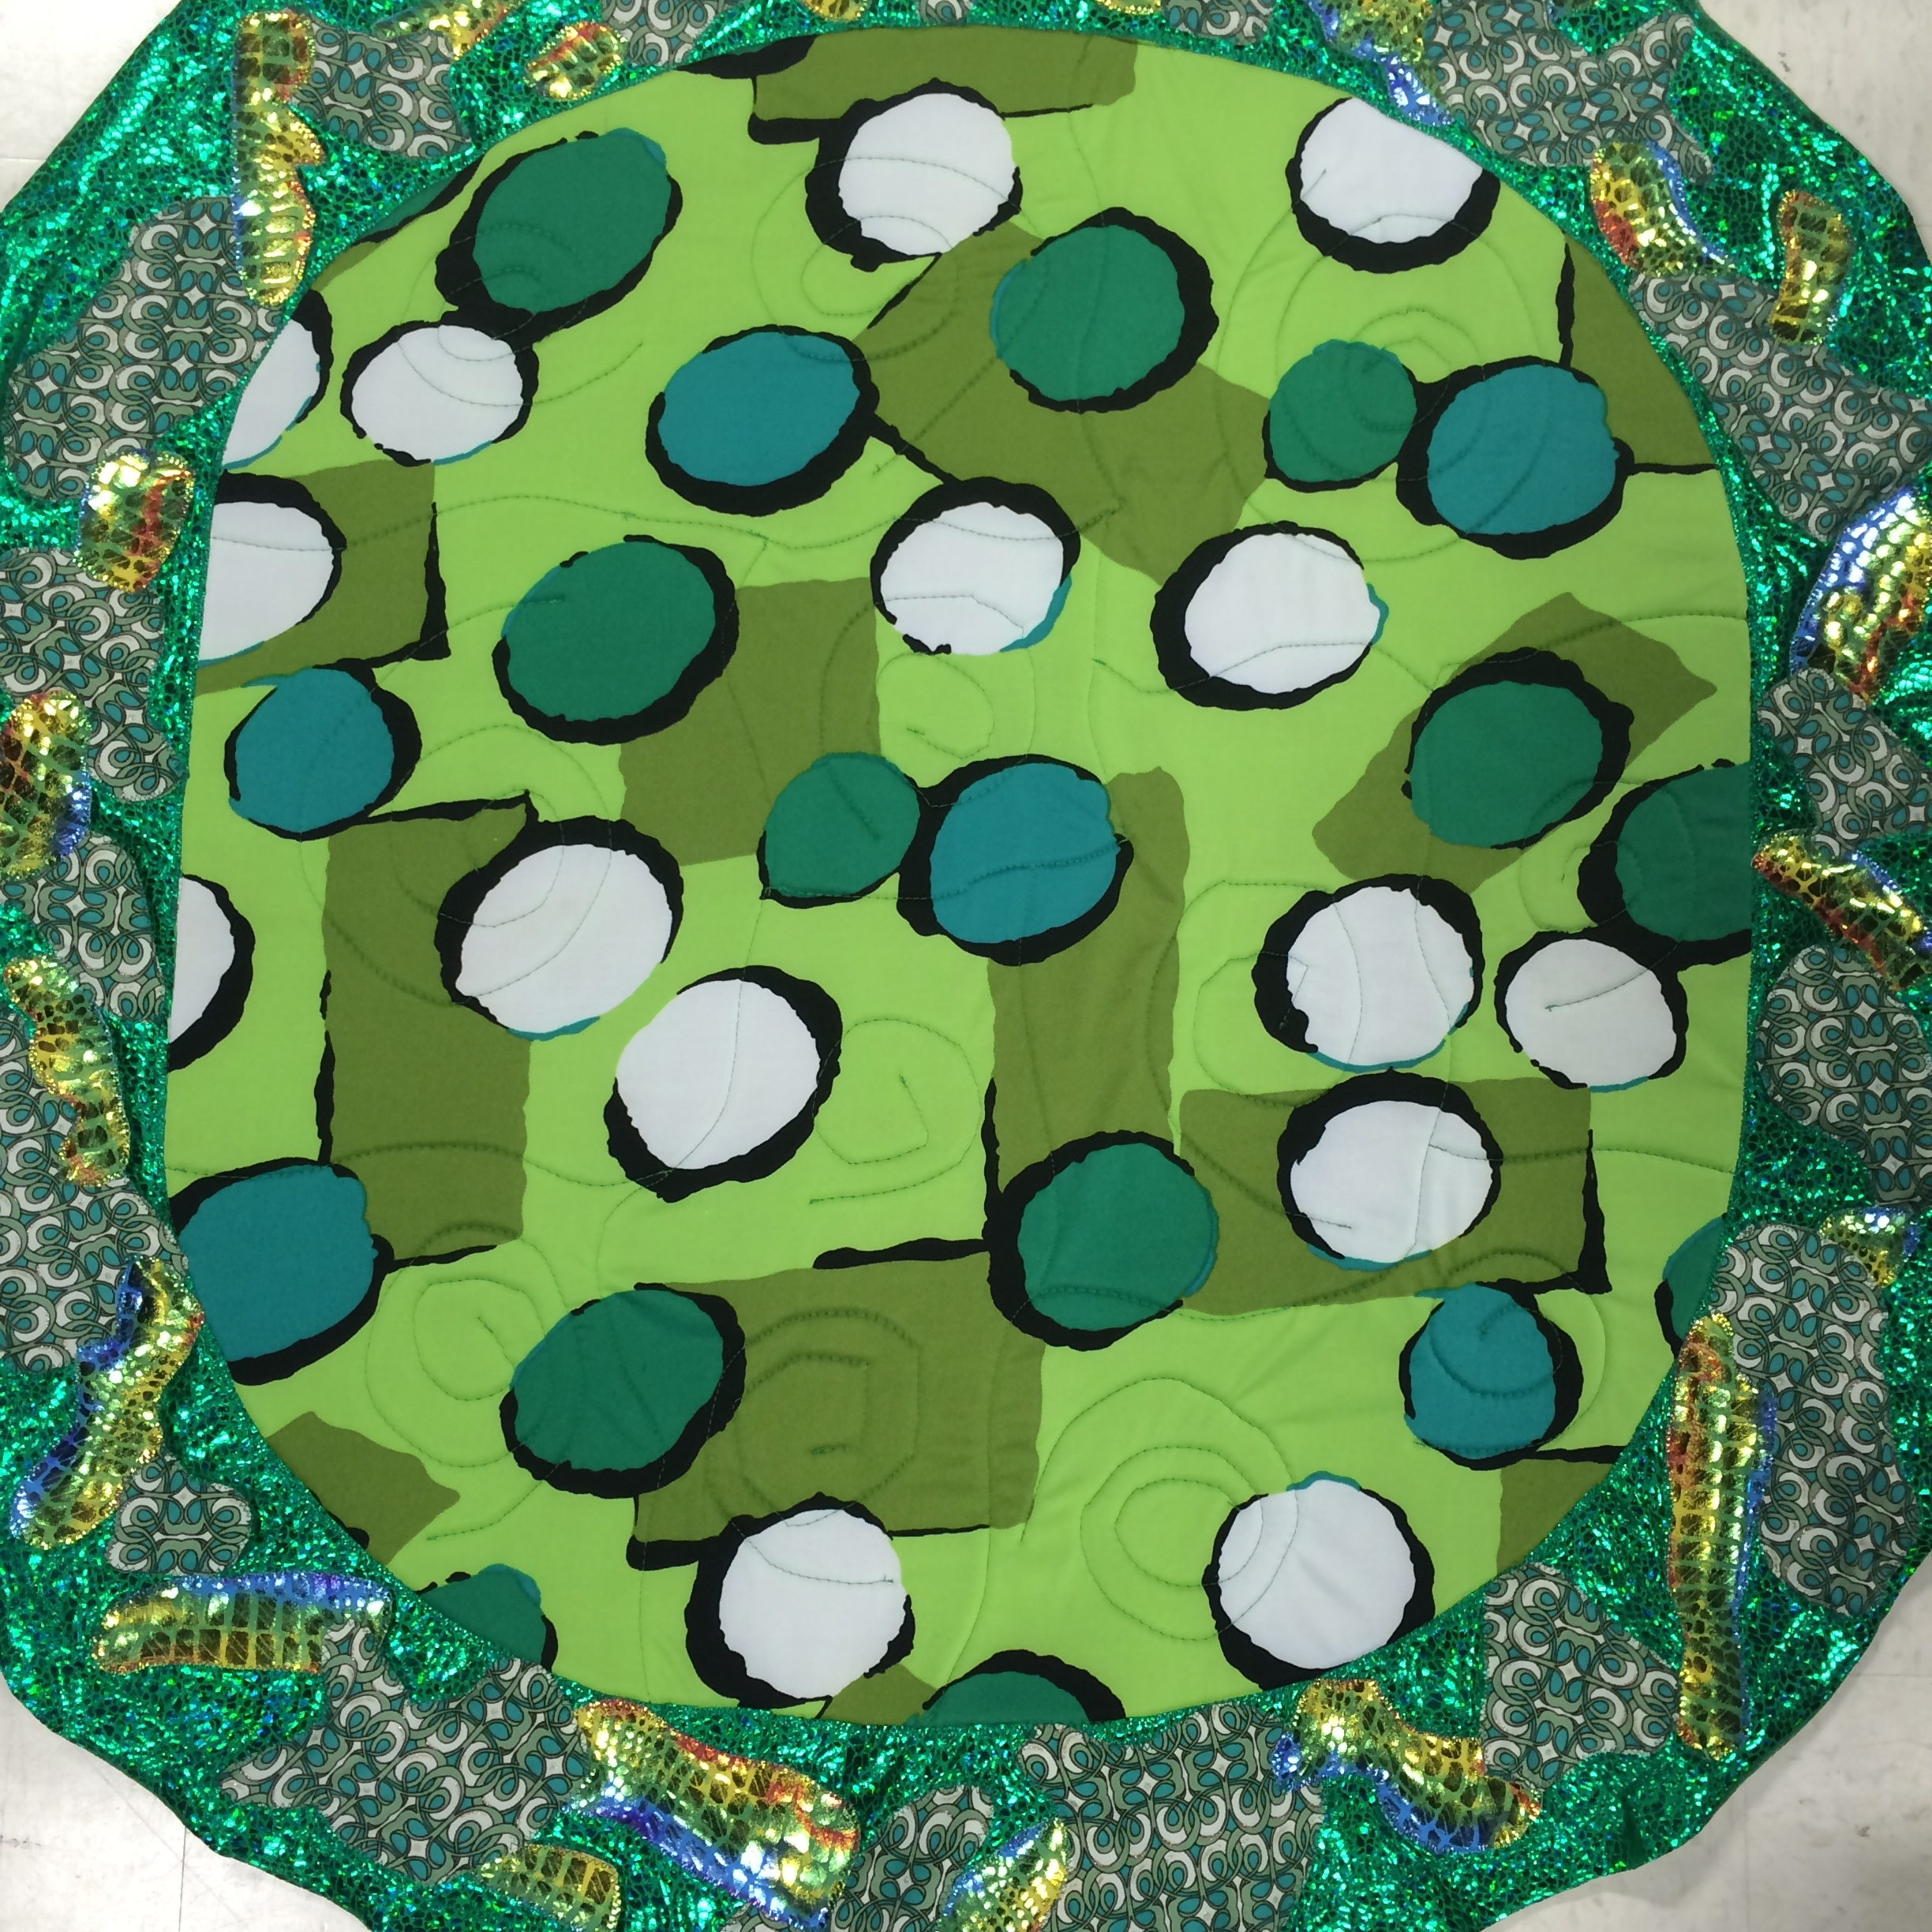 Patchwork on Turtle Shell